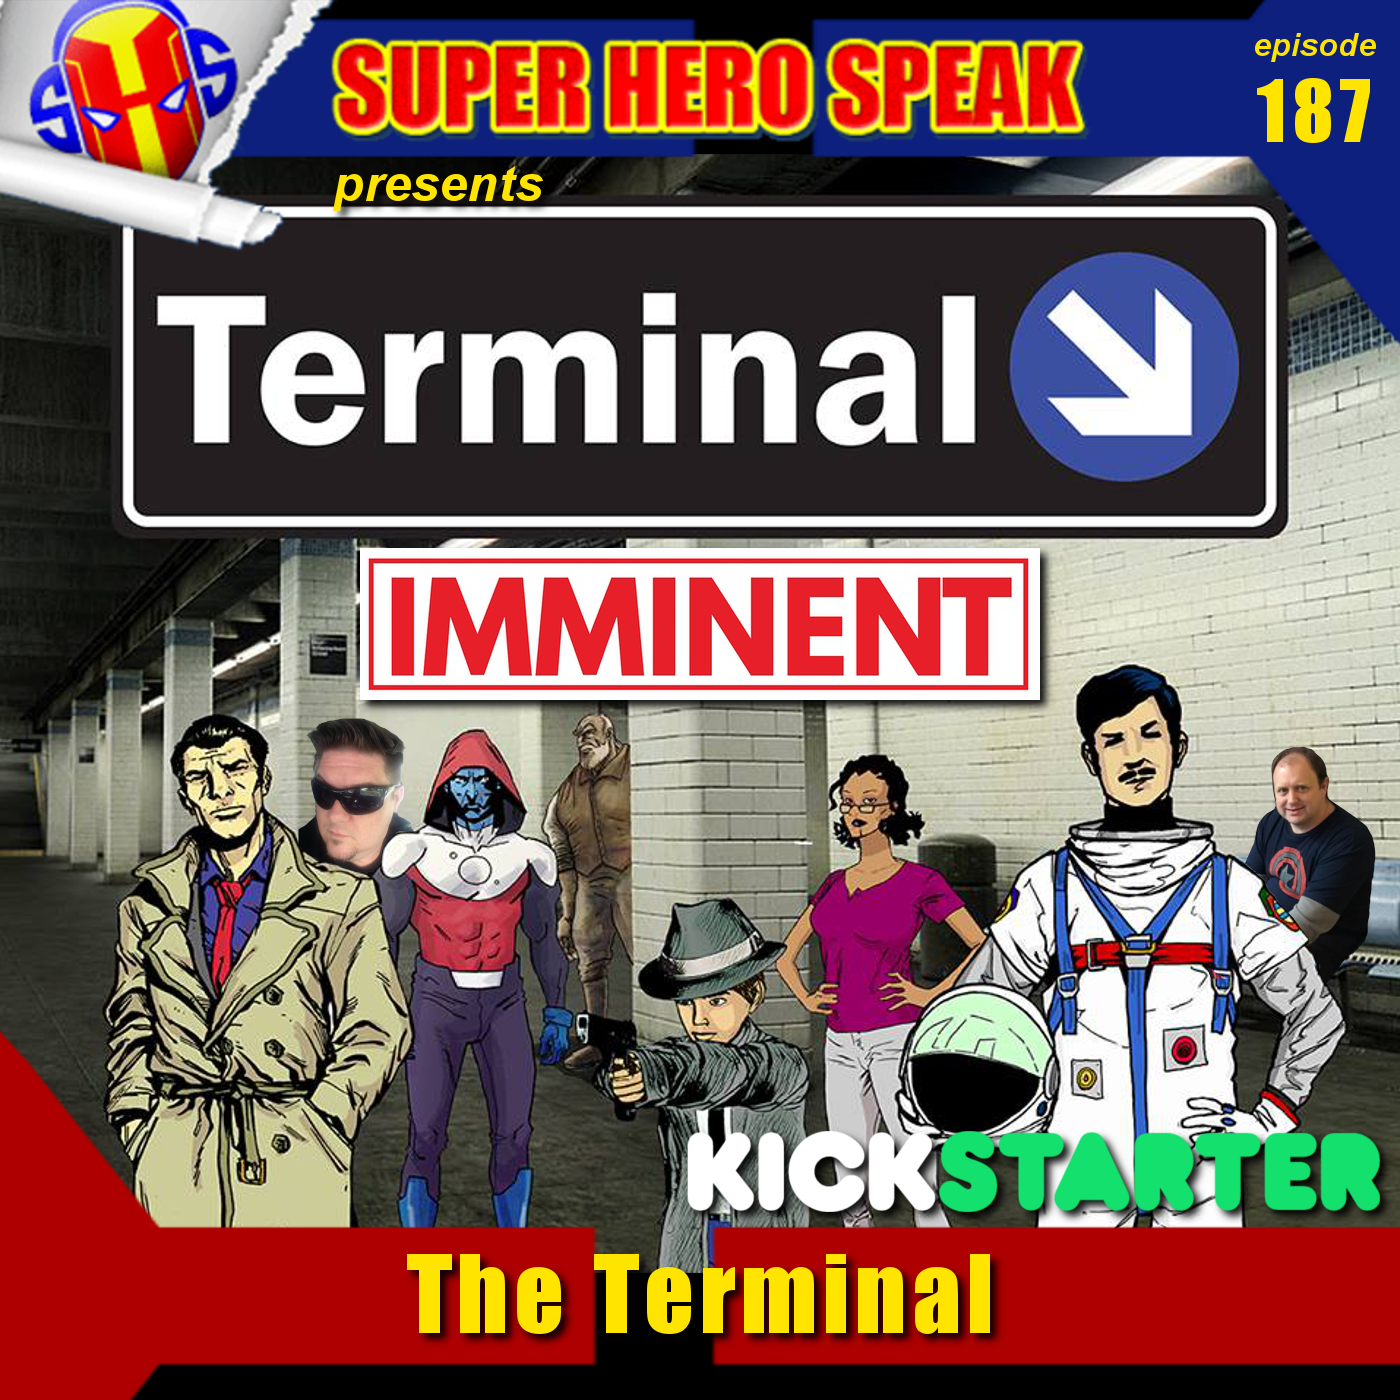 #187: The Terminal